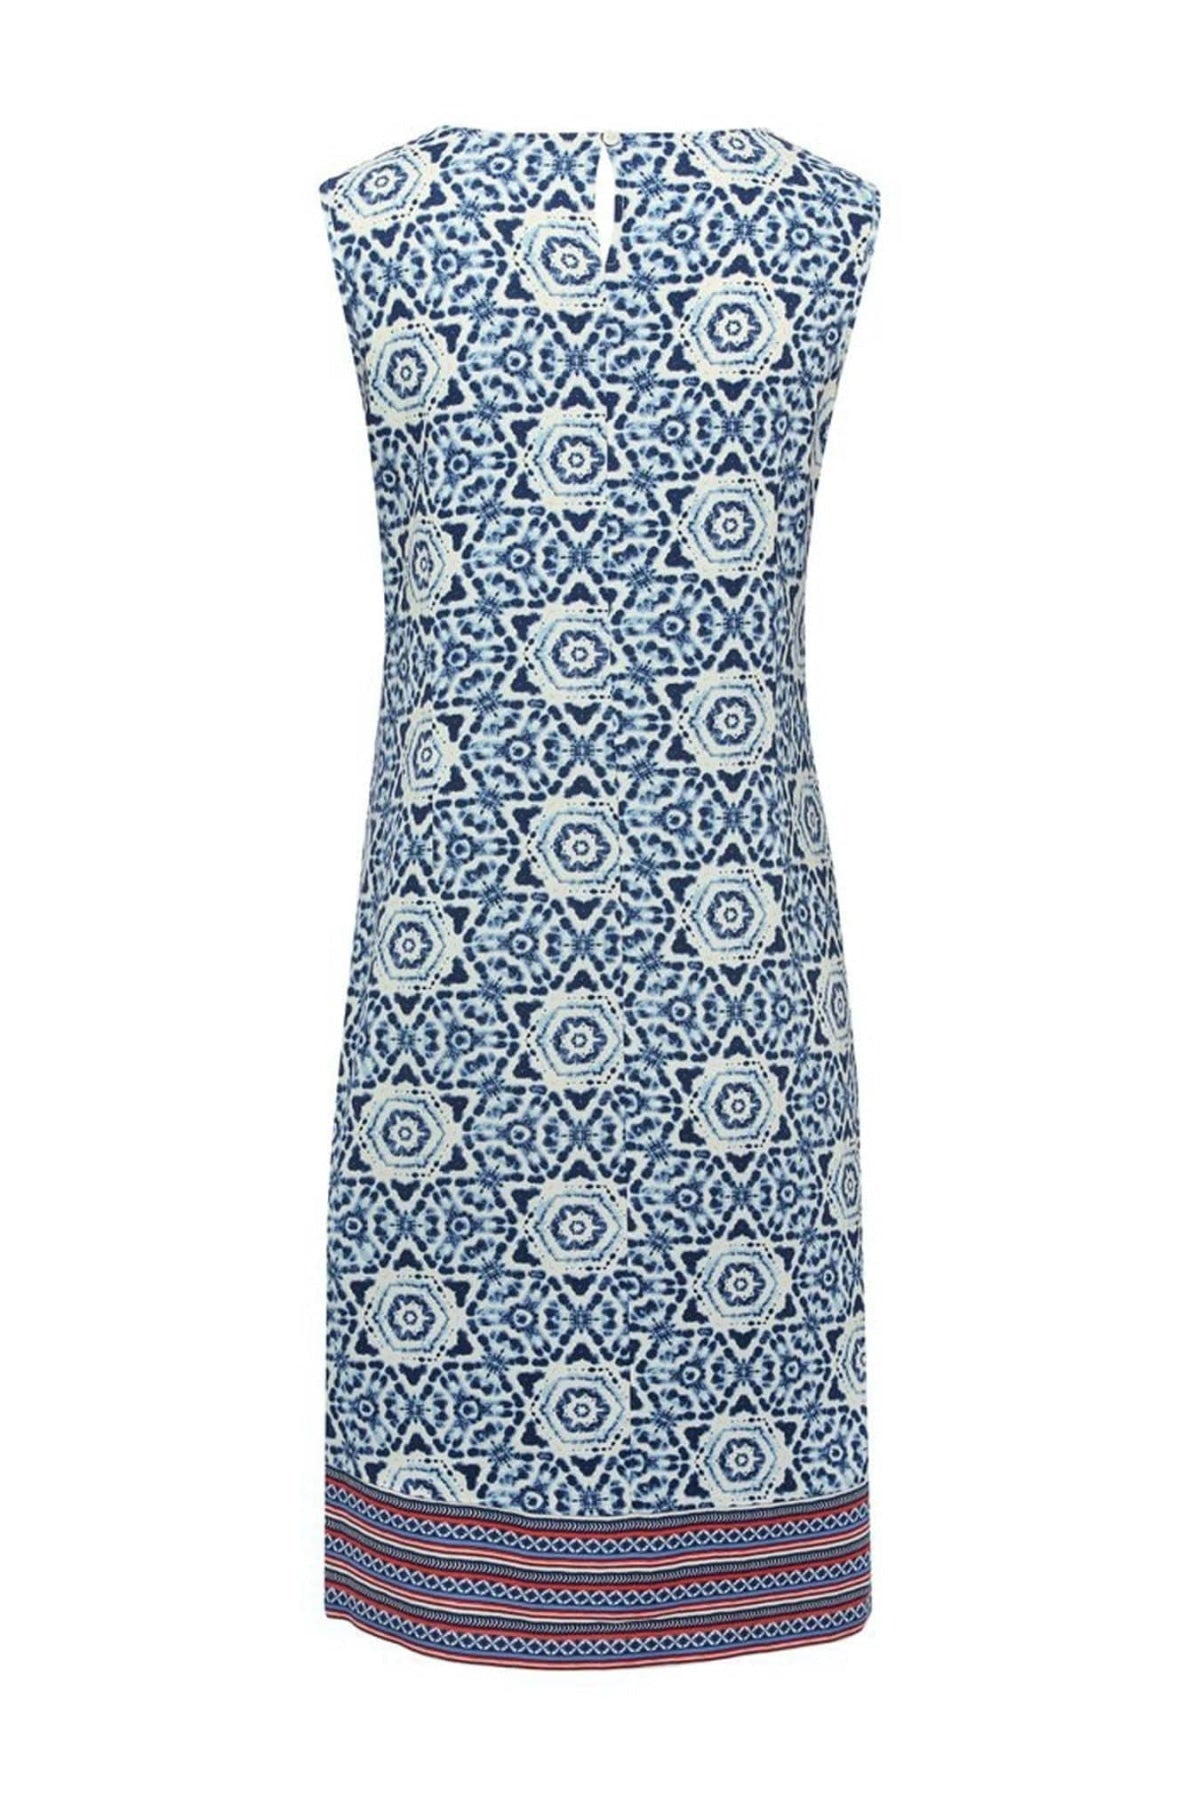 M&Co Ex M&Co Blue Mix Tile Print Shift Dress | Secret Label